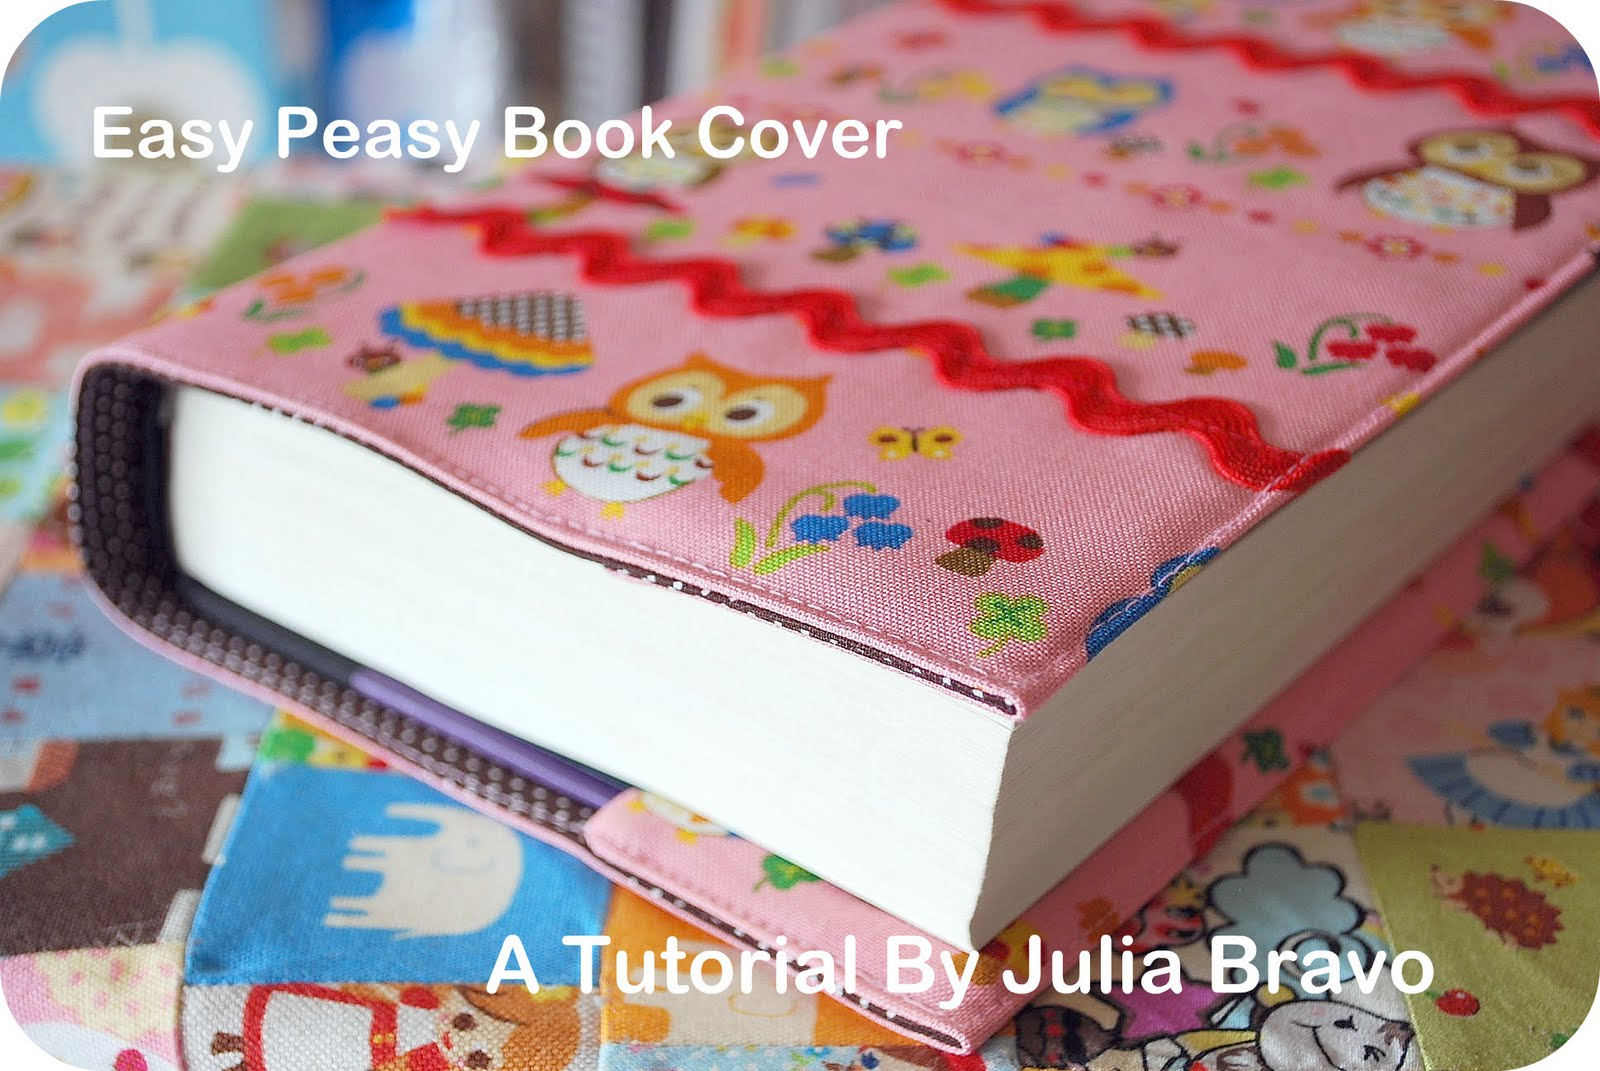 Sew A Fabric Book Cover : Stitches book cover tutorial image heavy